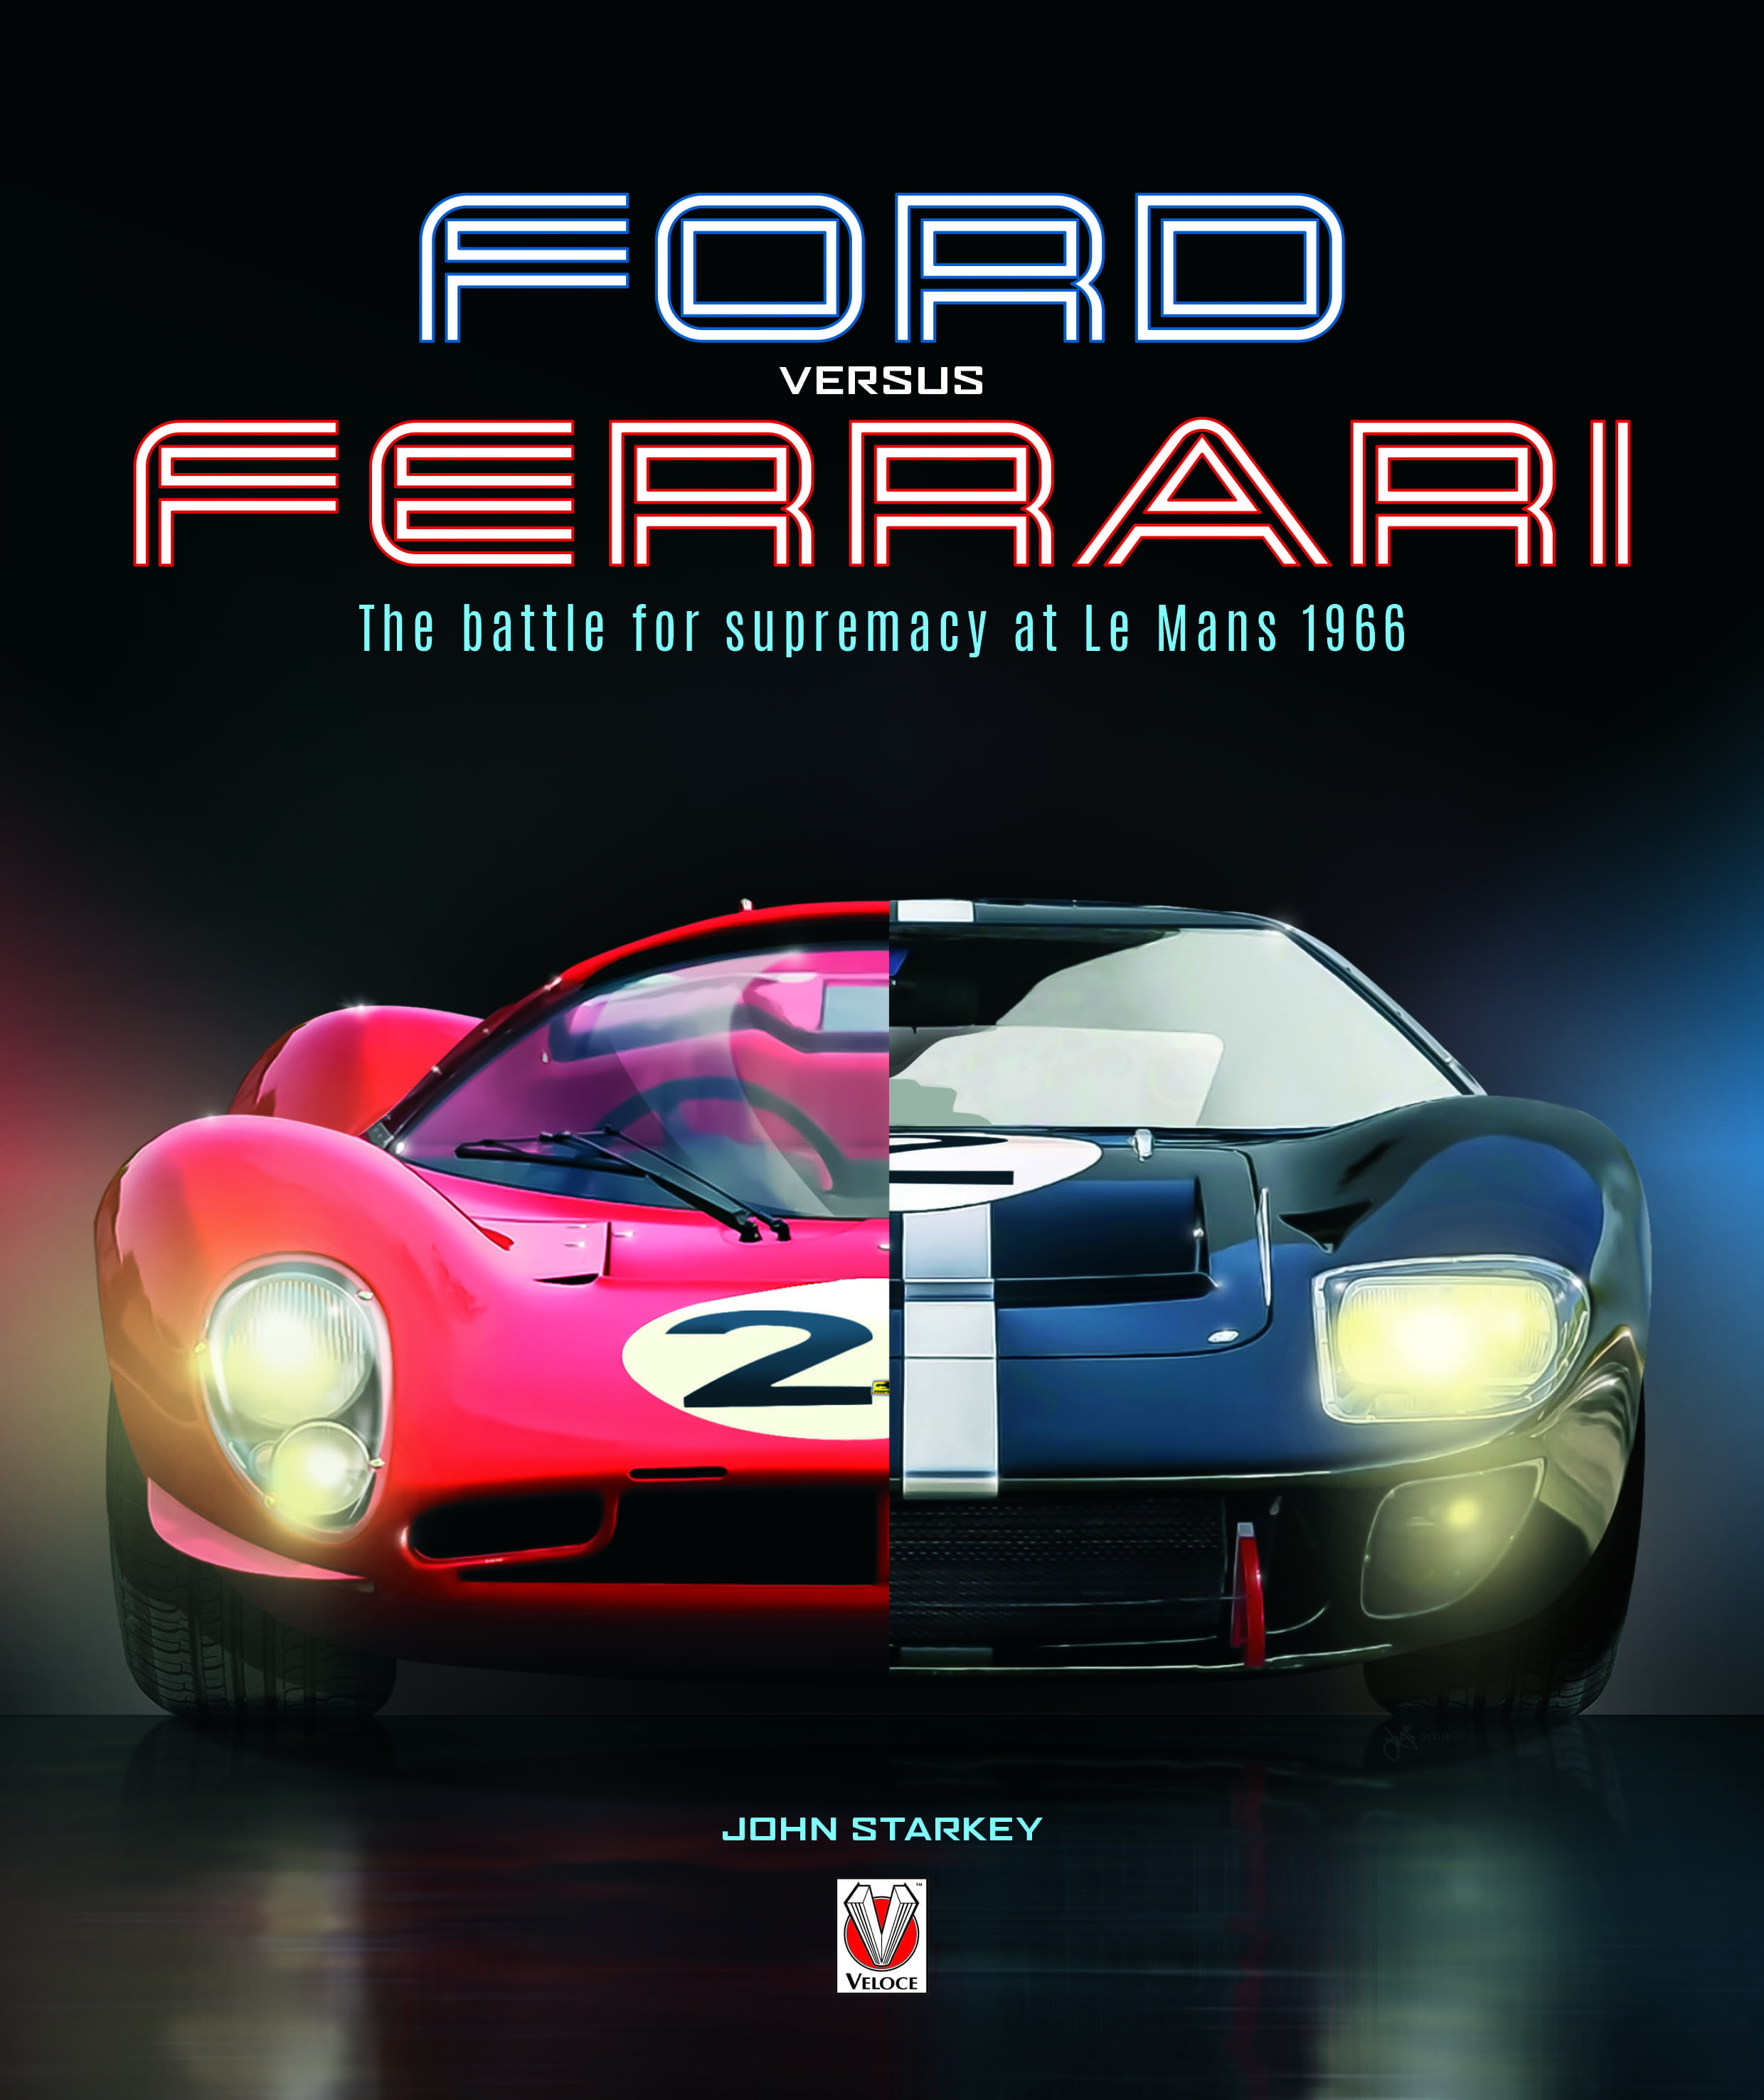 Ford versus Ferrari – The battle for supremacy at Le Mans 1966 cover